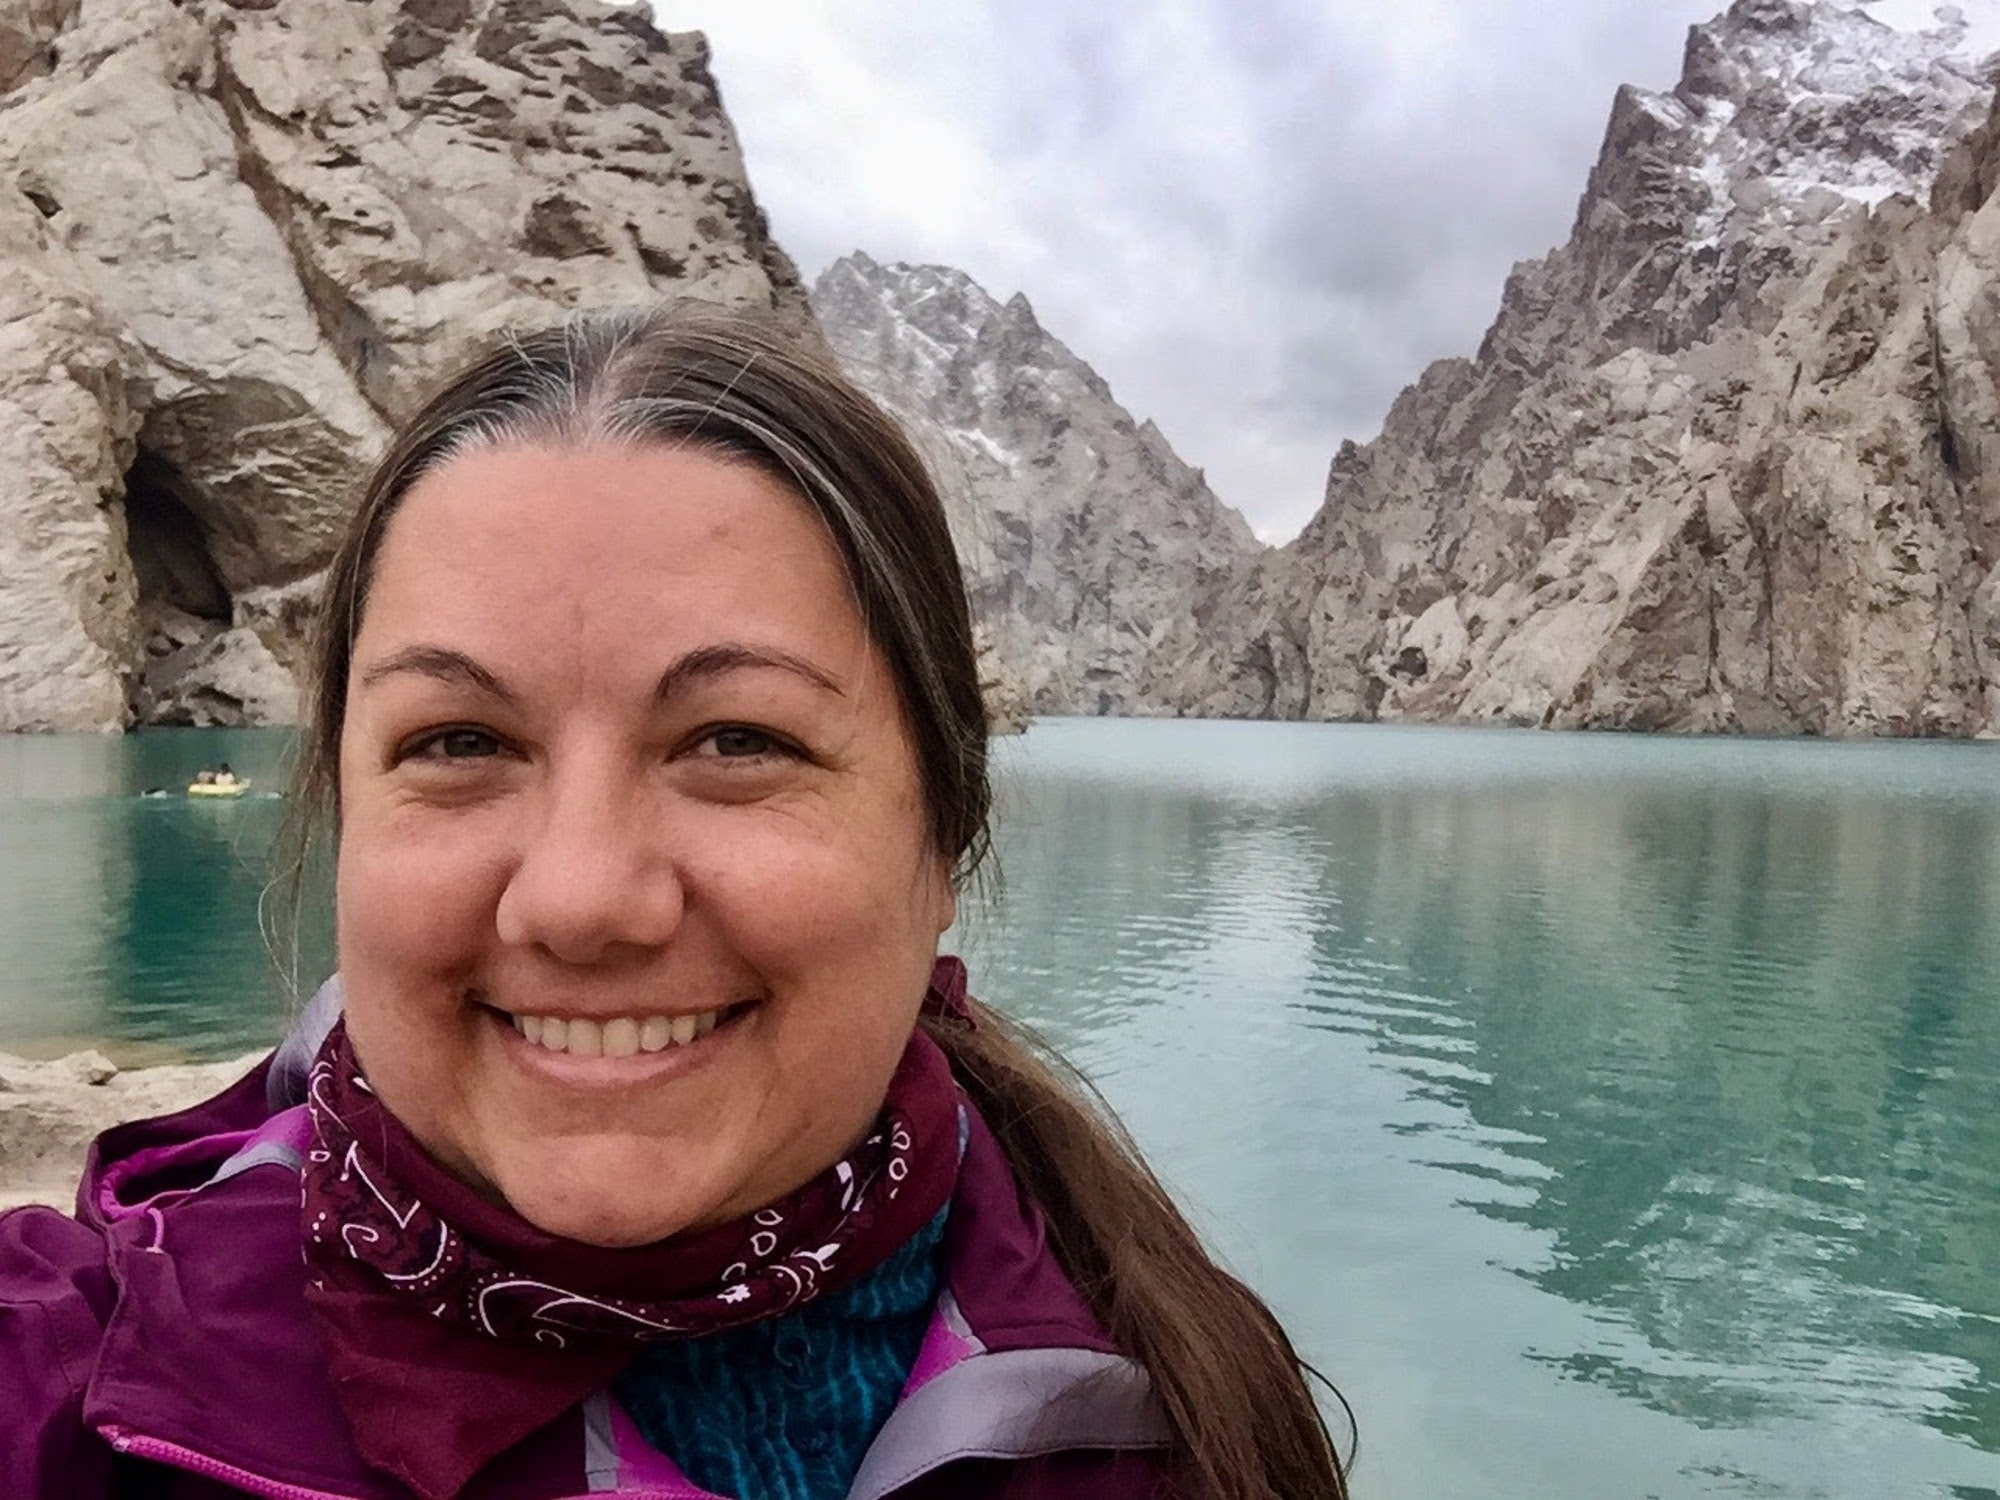 Just back from: Kyrgyzstan